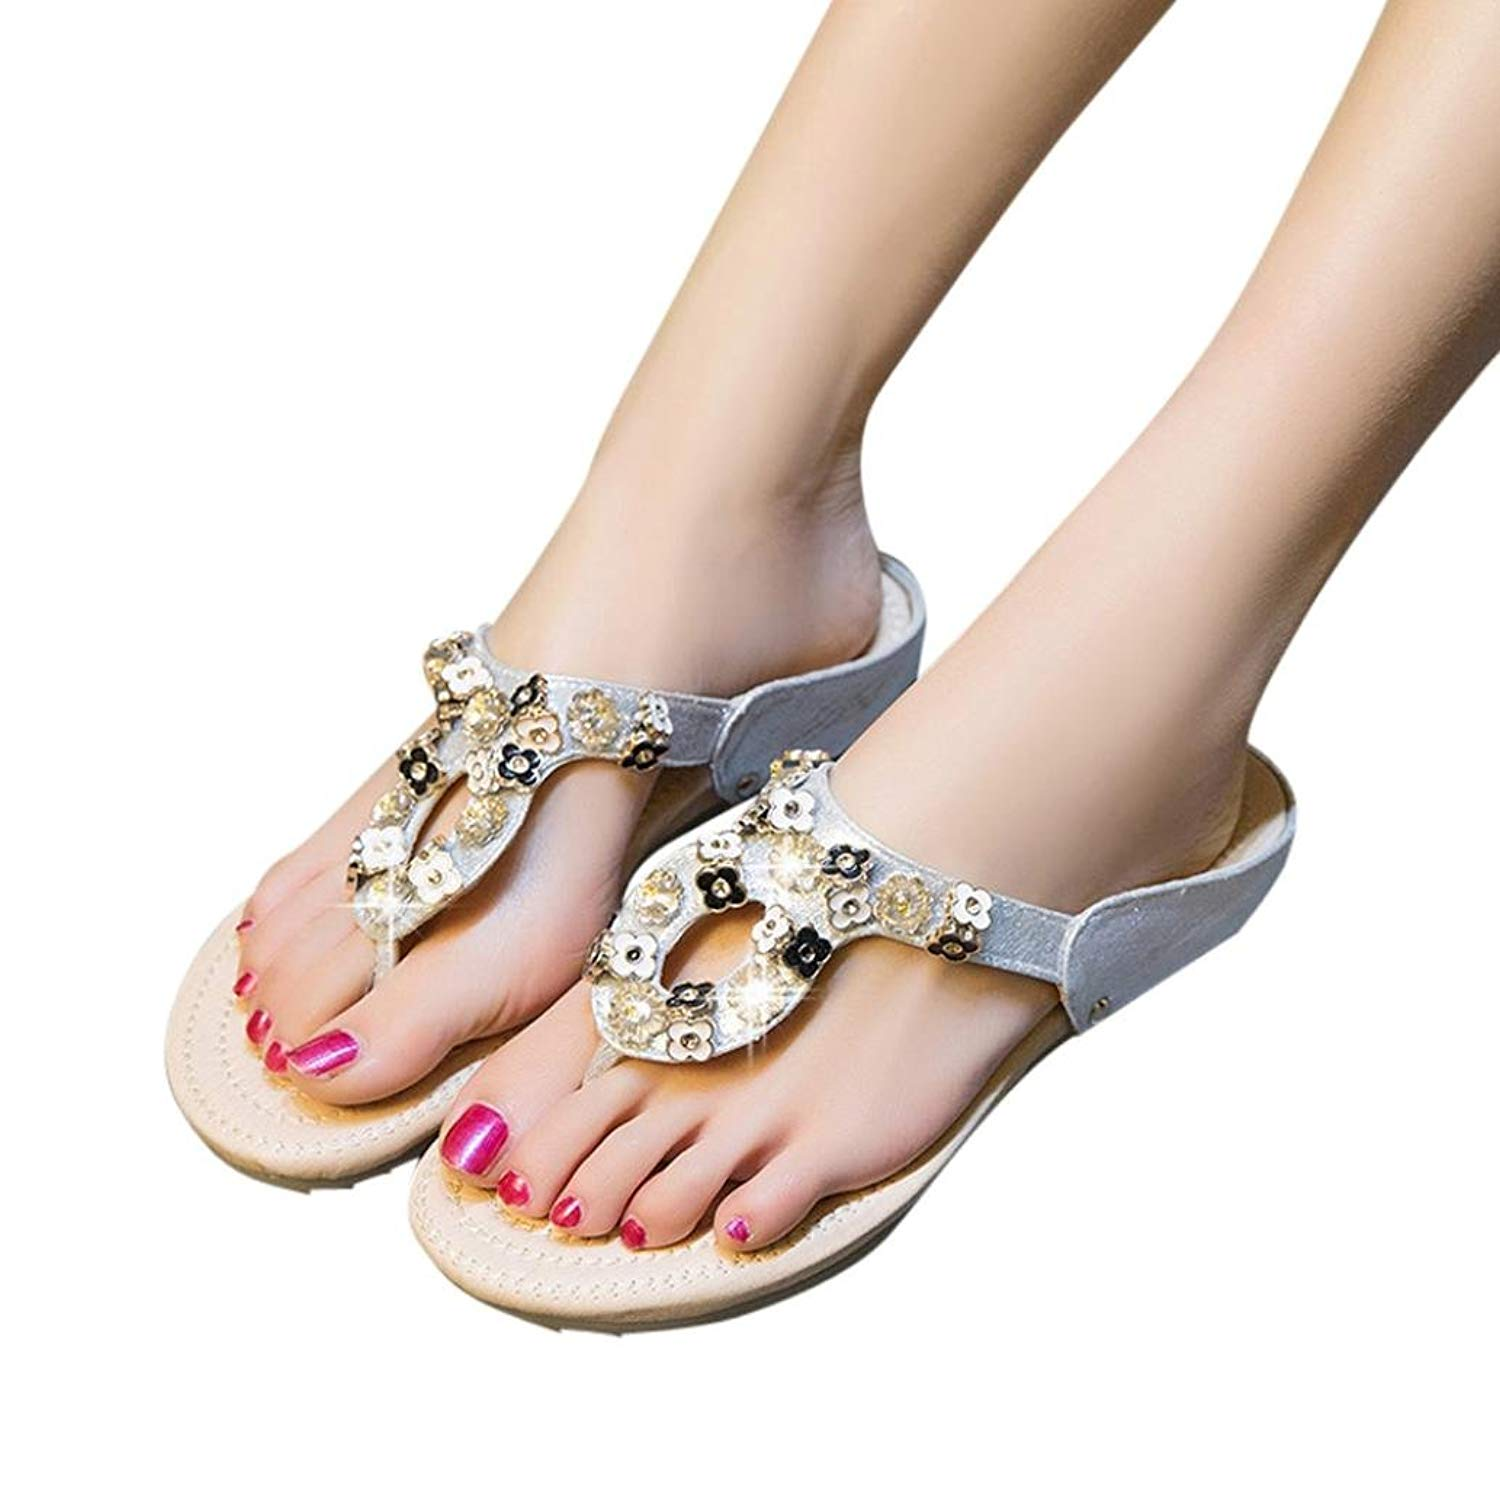 fcfc7686fbf Get Quotations · BSGSH Clearance! Flat Thong Sandals - Casual Flower  Rhinestone Flip Flops for Ladies Women Teens